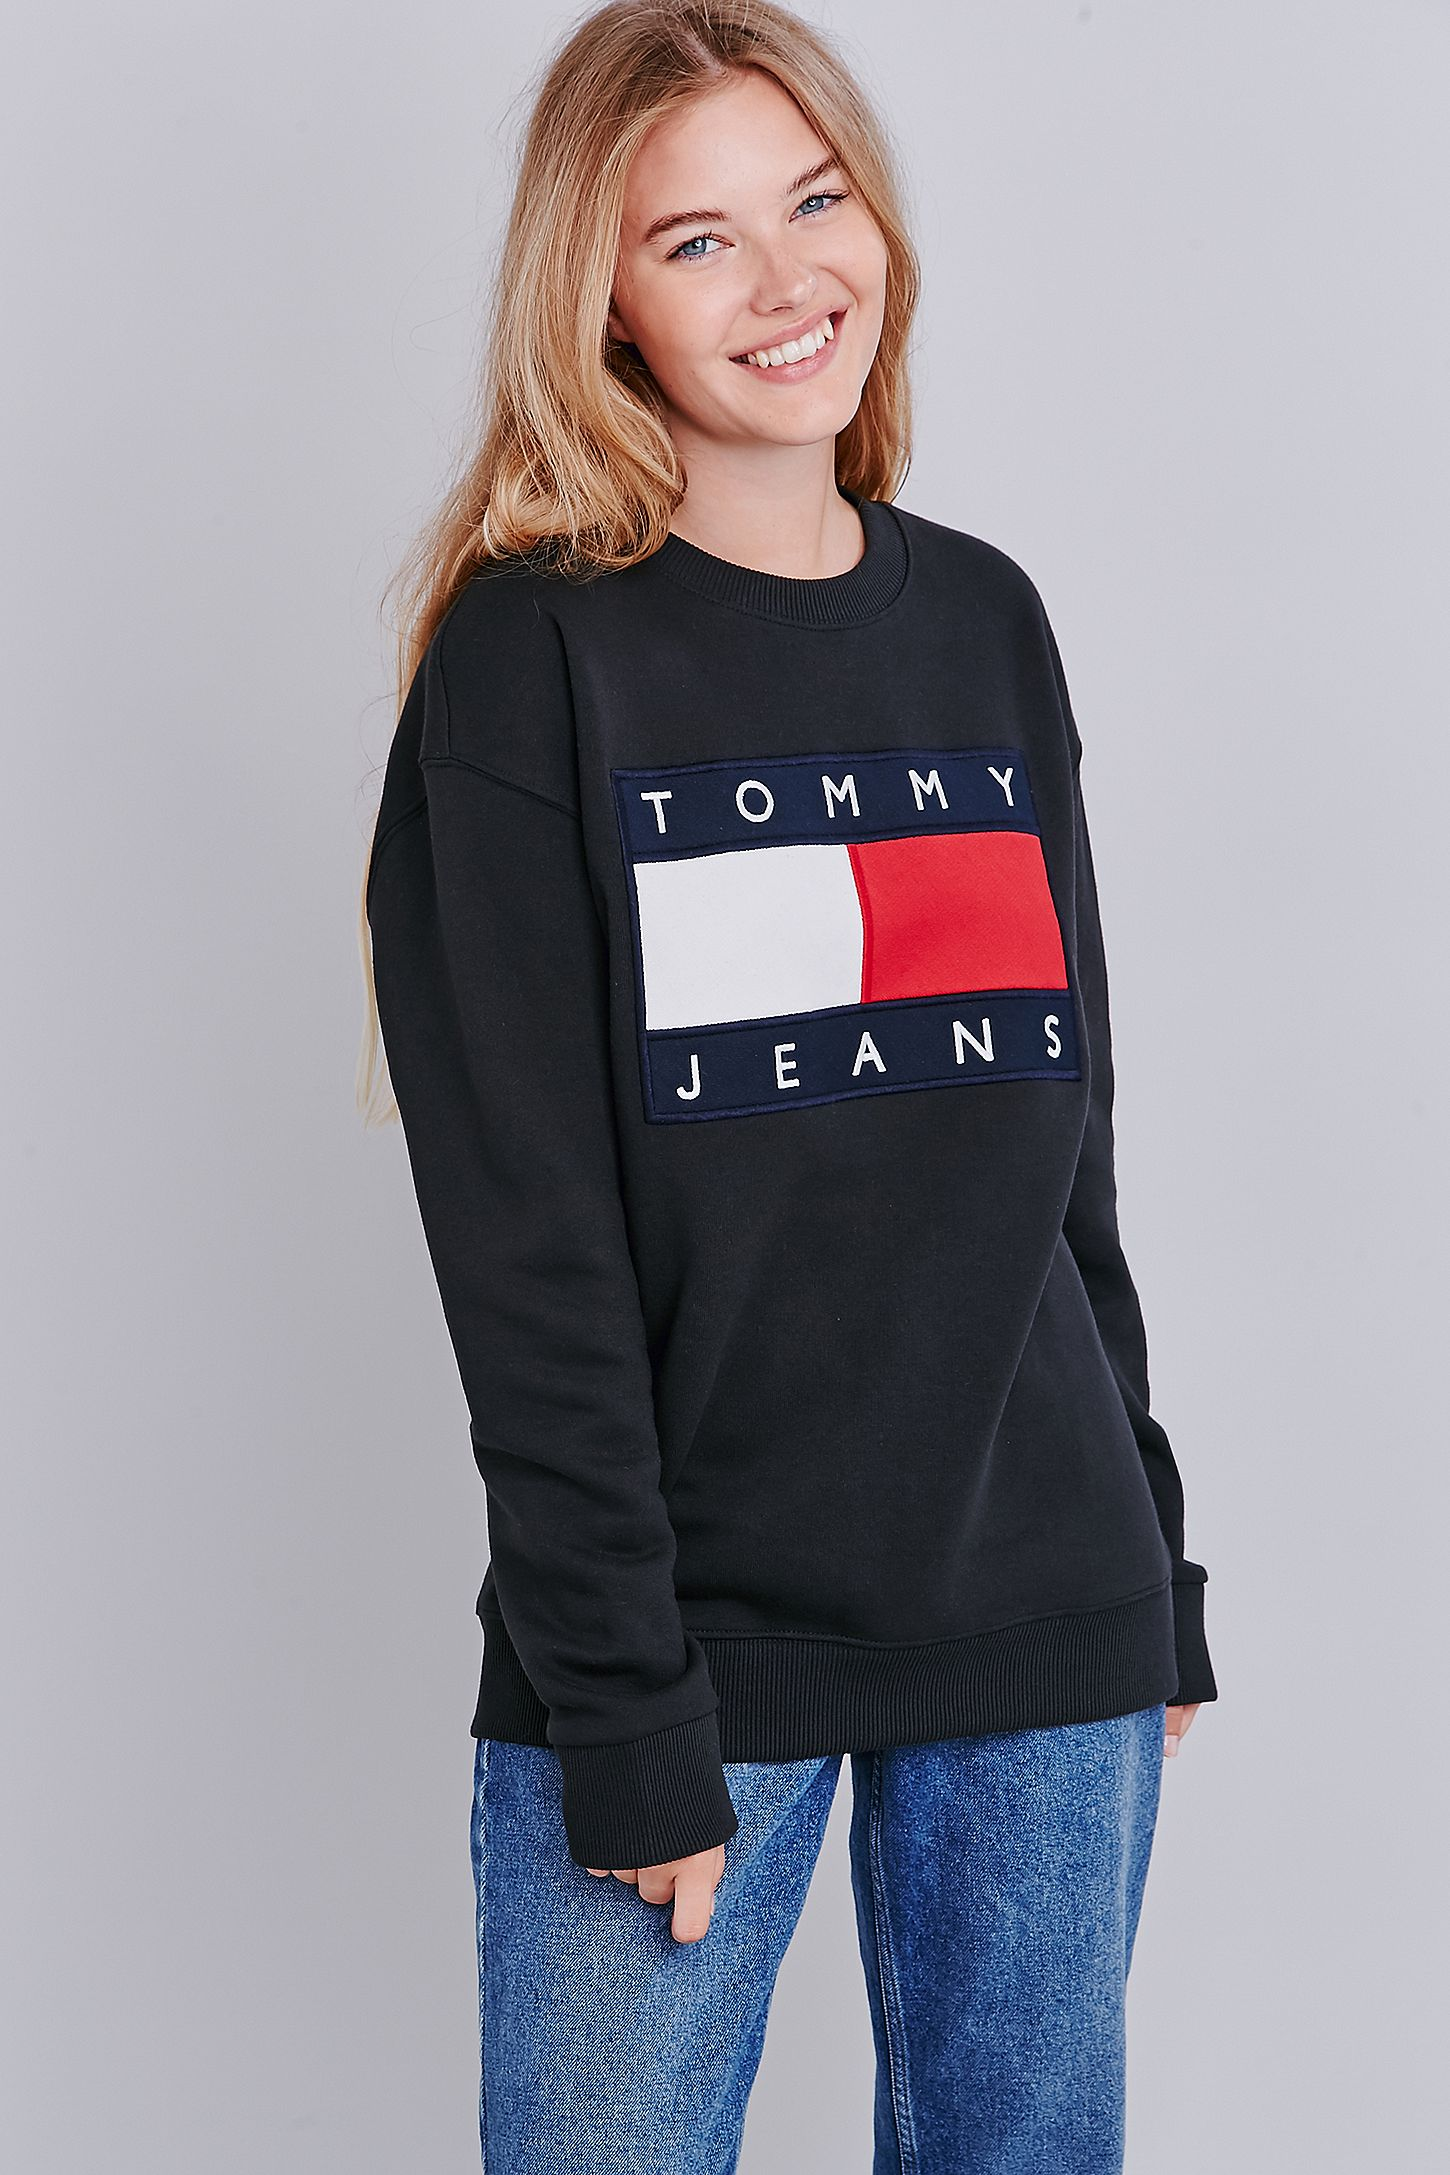 a6950df1 UO Exclusive Tommy Jeans Black Crew Neck Sweatshirt | Urban ...